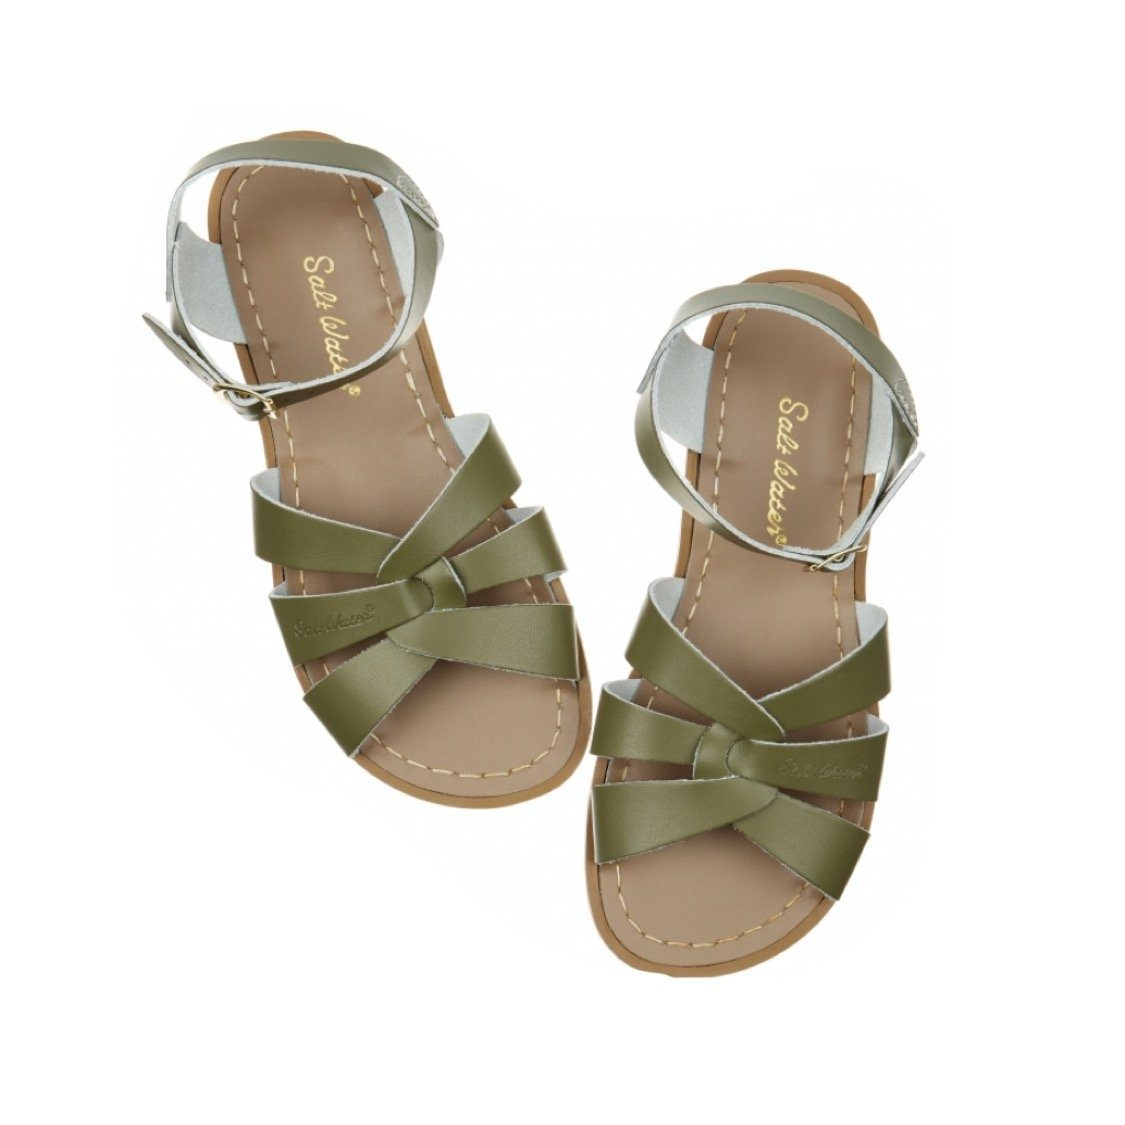 Adult Original Saltwater Sandals - Olive Sandals Salt Water Sandals